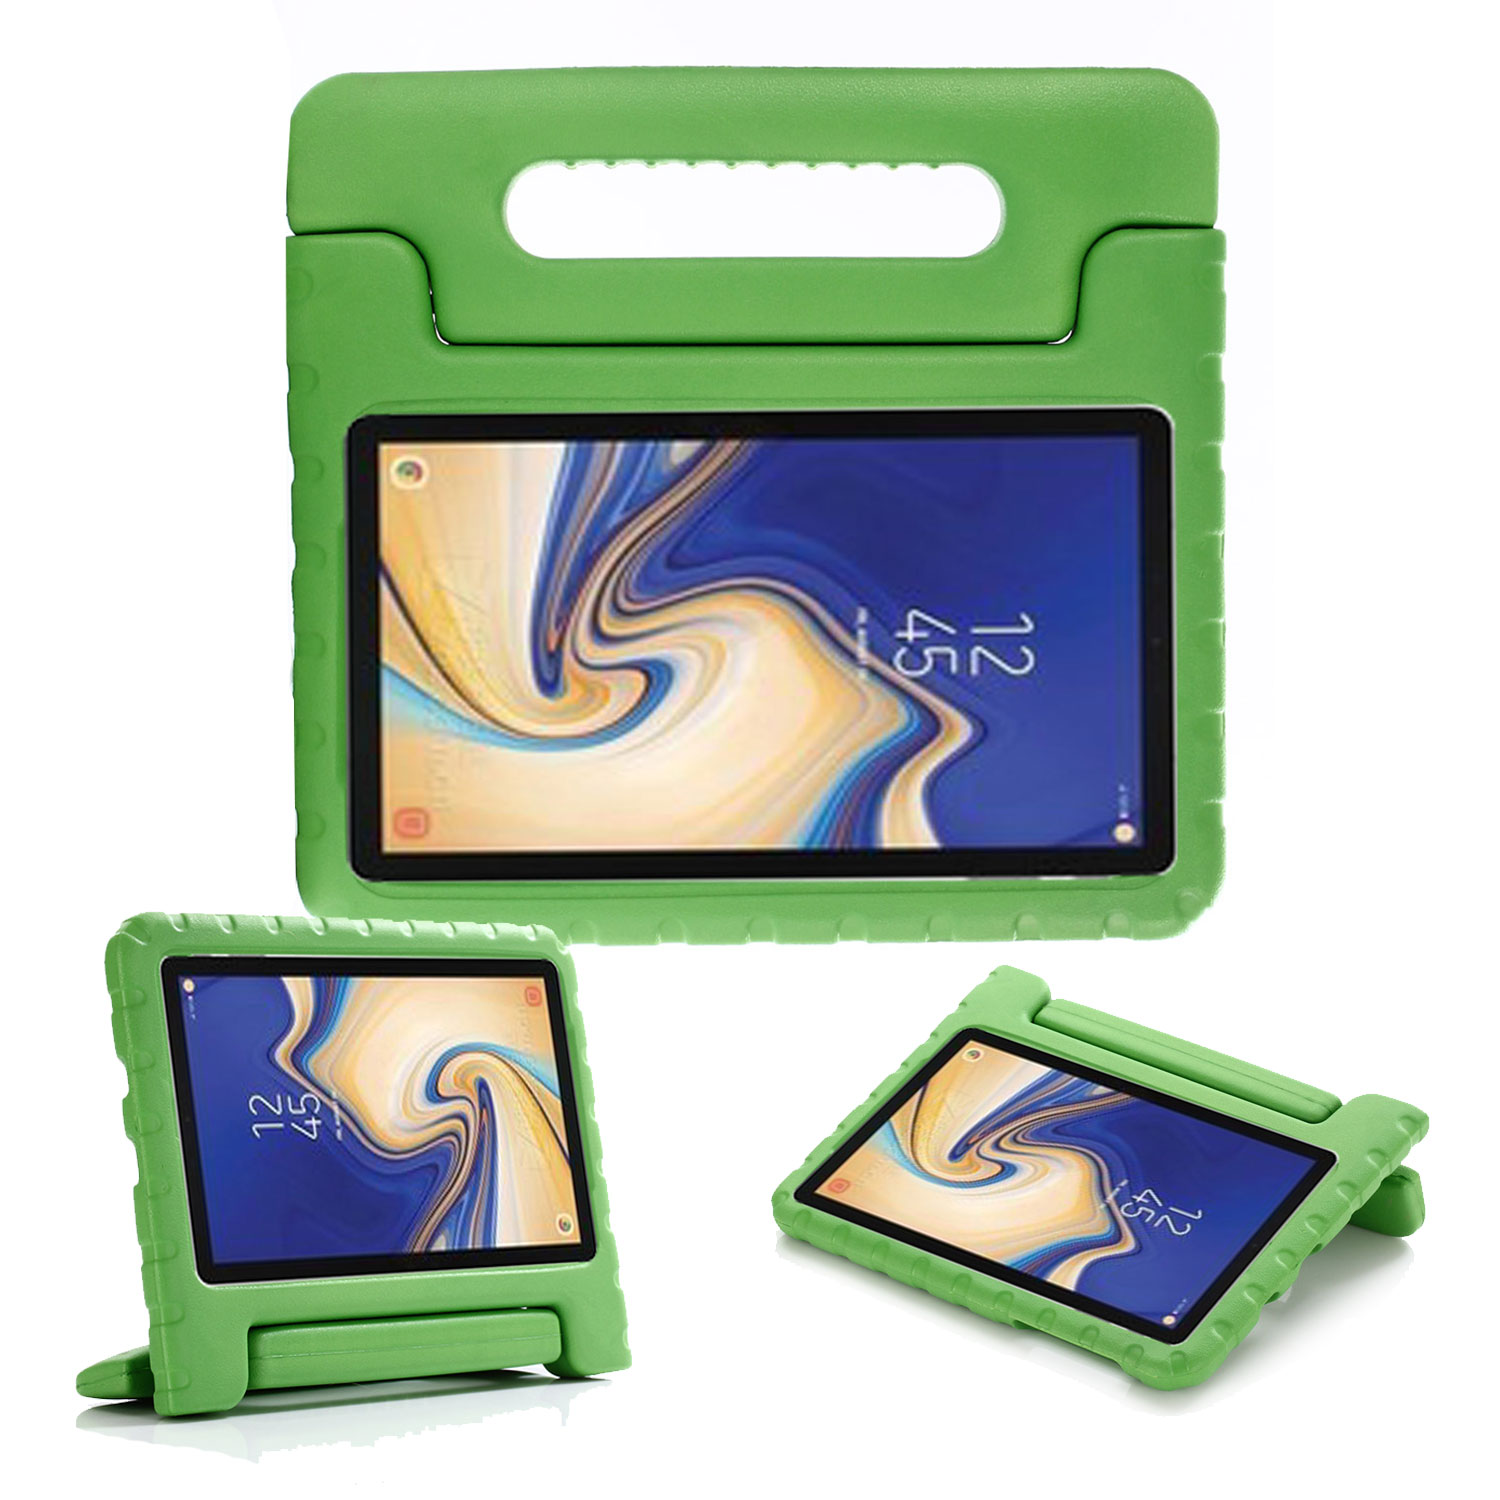 Allytech Kids Case for New Samsung Galaxy Tab A 8.0 2018 - EVA ShockProof Case Light Weight Super Protection Cover Handle Stand Case for Samsung Galaxy Tab A 8.0 2018 (SM-T387) - Green